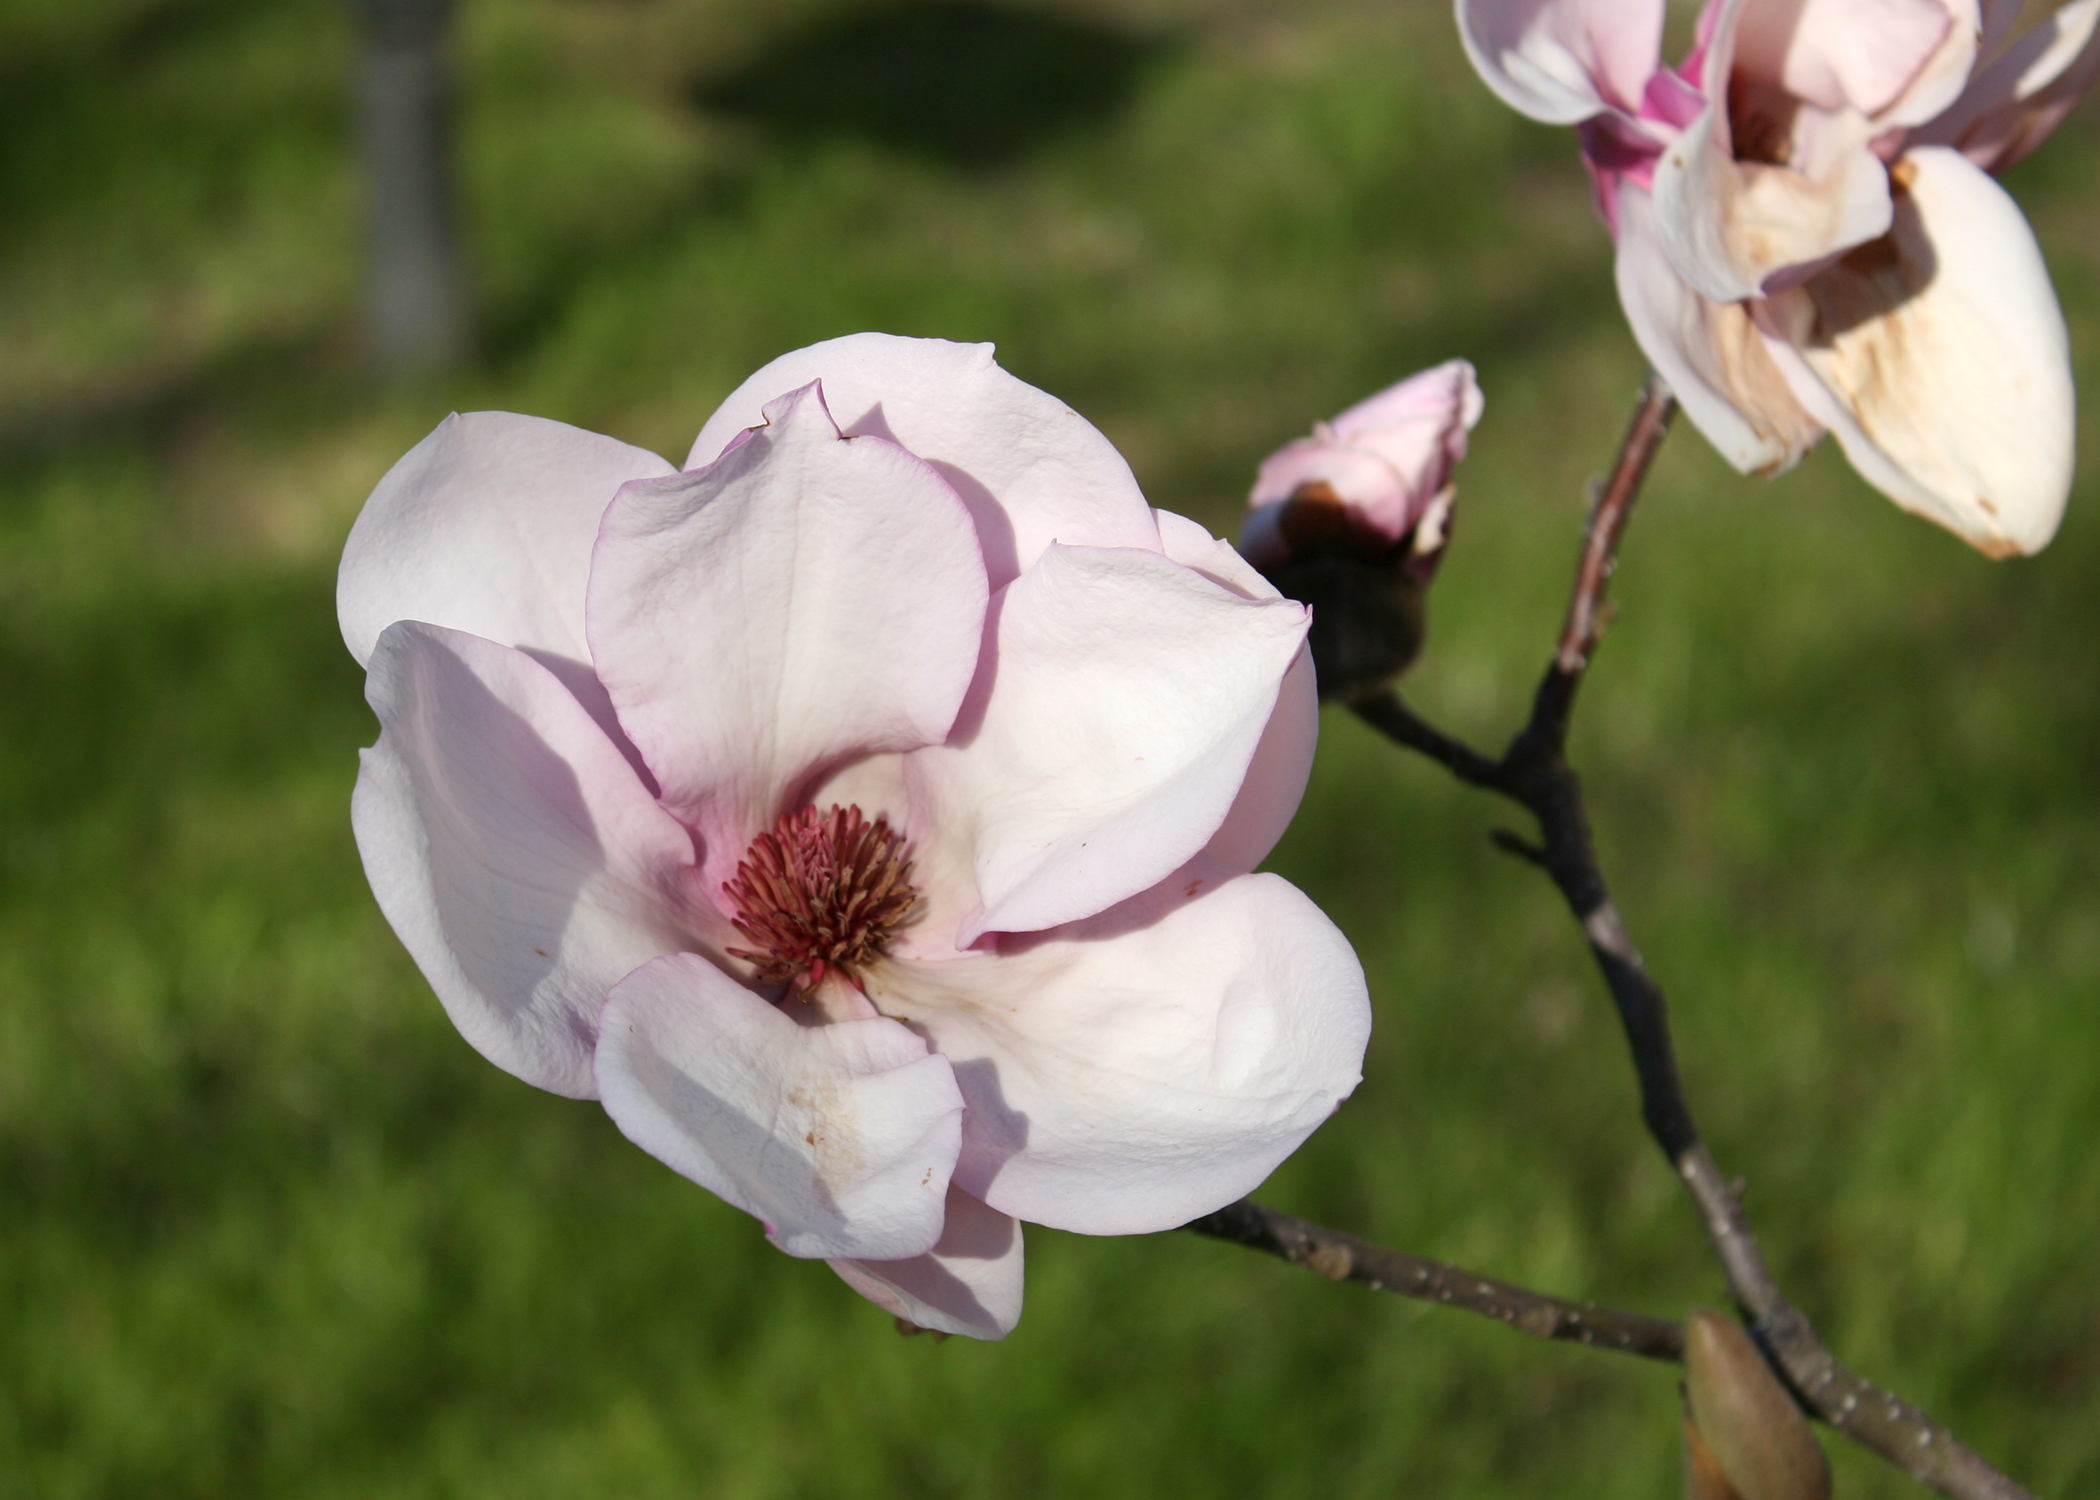 Saucer magnolia flowers are early signal of spring mississippi the huge flowers on saucer magnolias can reach up to 10 inches across and can be mightylinksfo